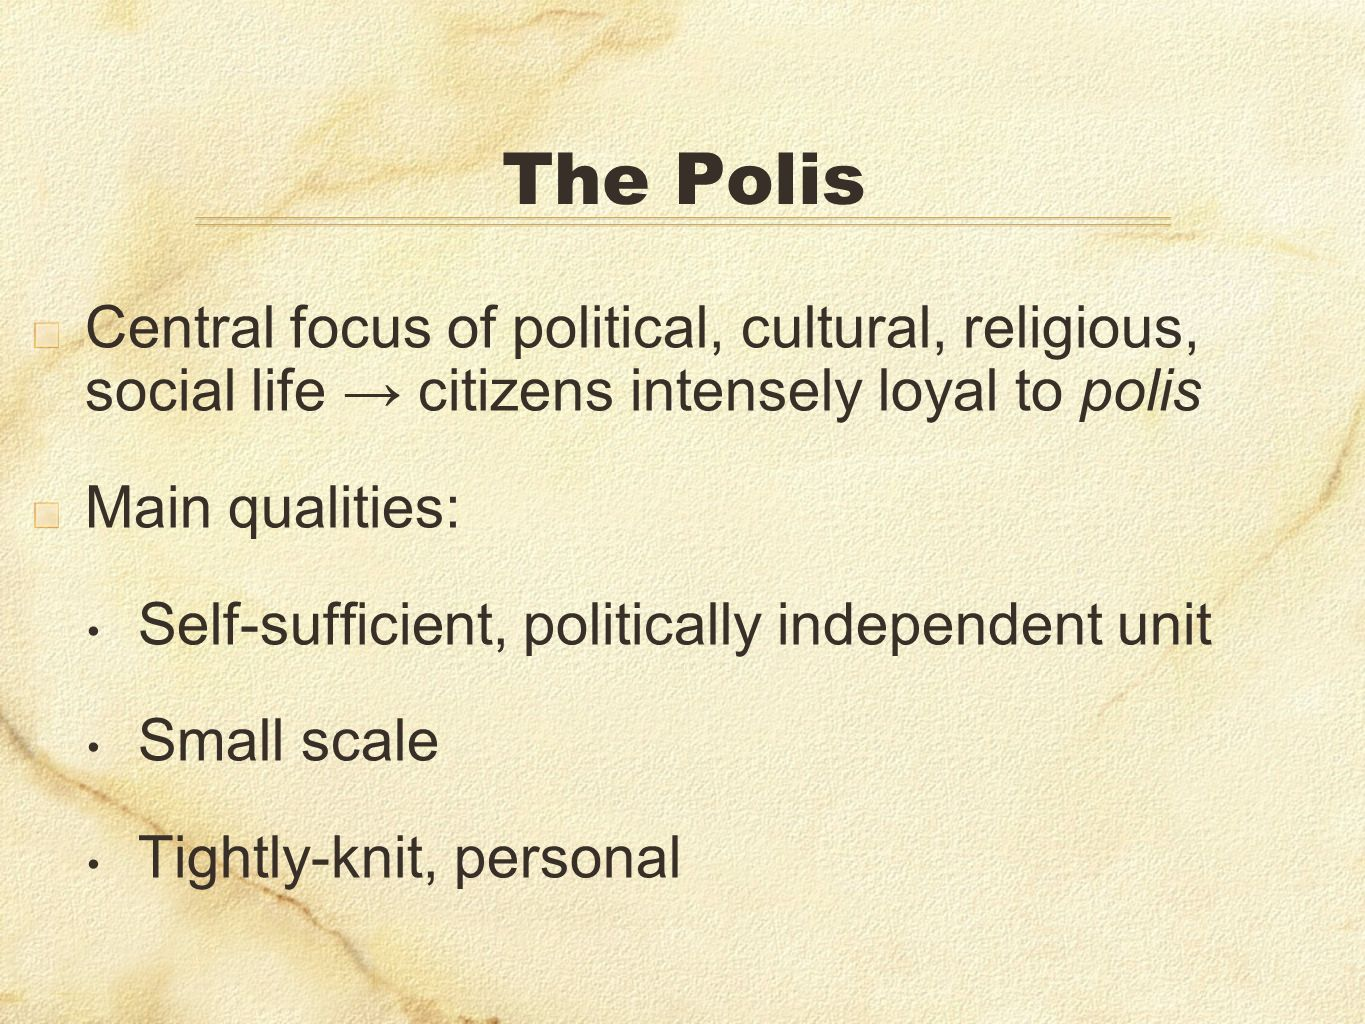 The Polis Central focus of political, cultural, religious, social life → citizens intensely loyal to polis.